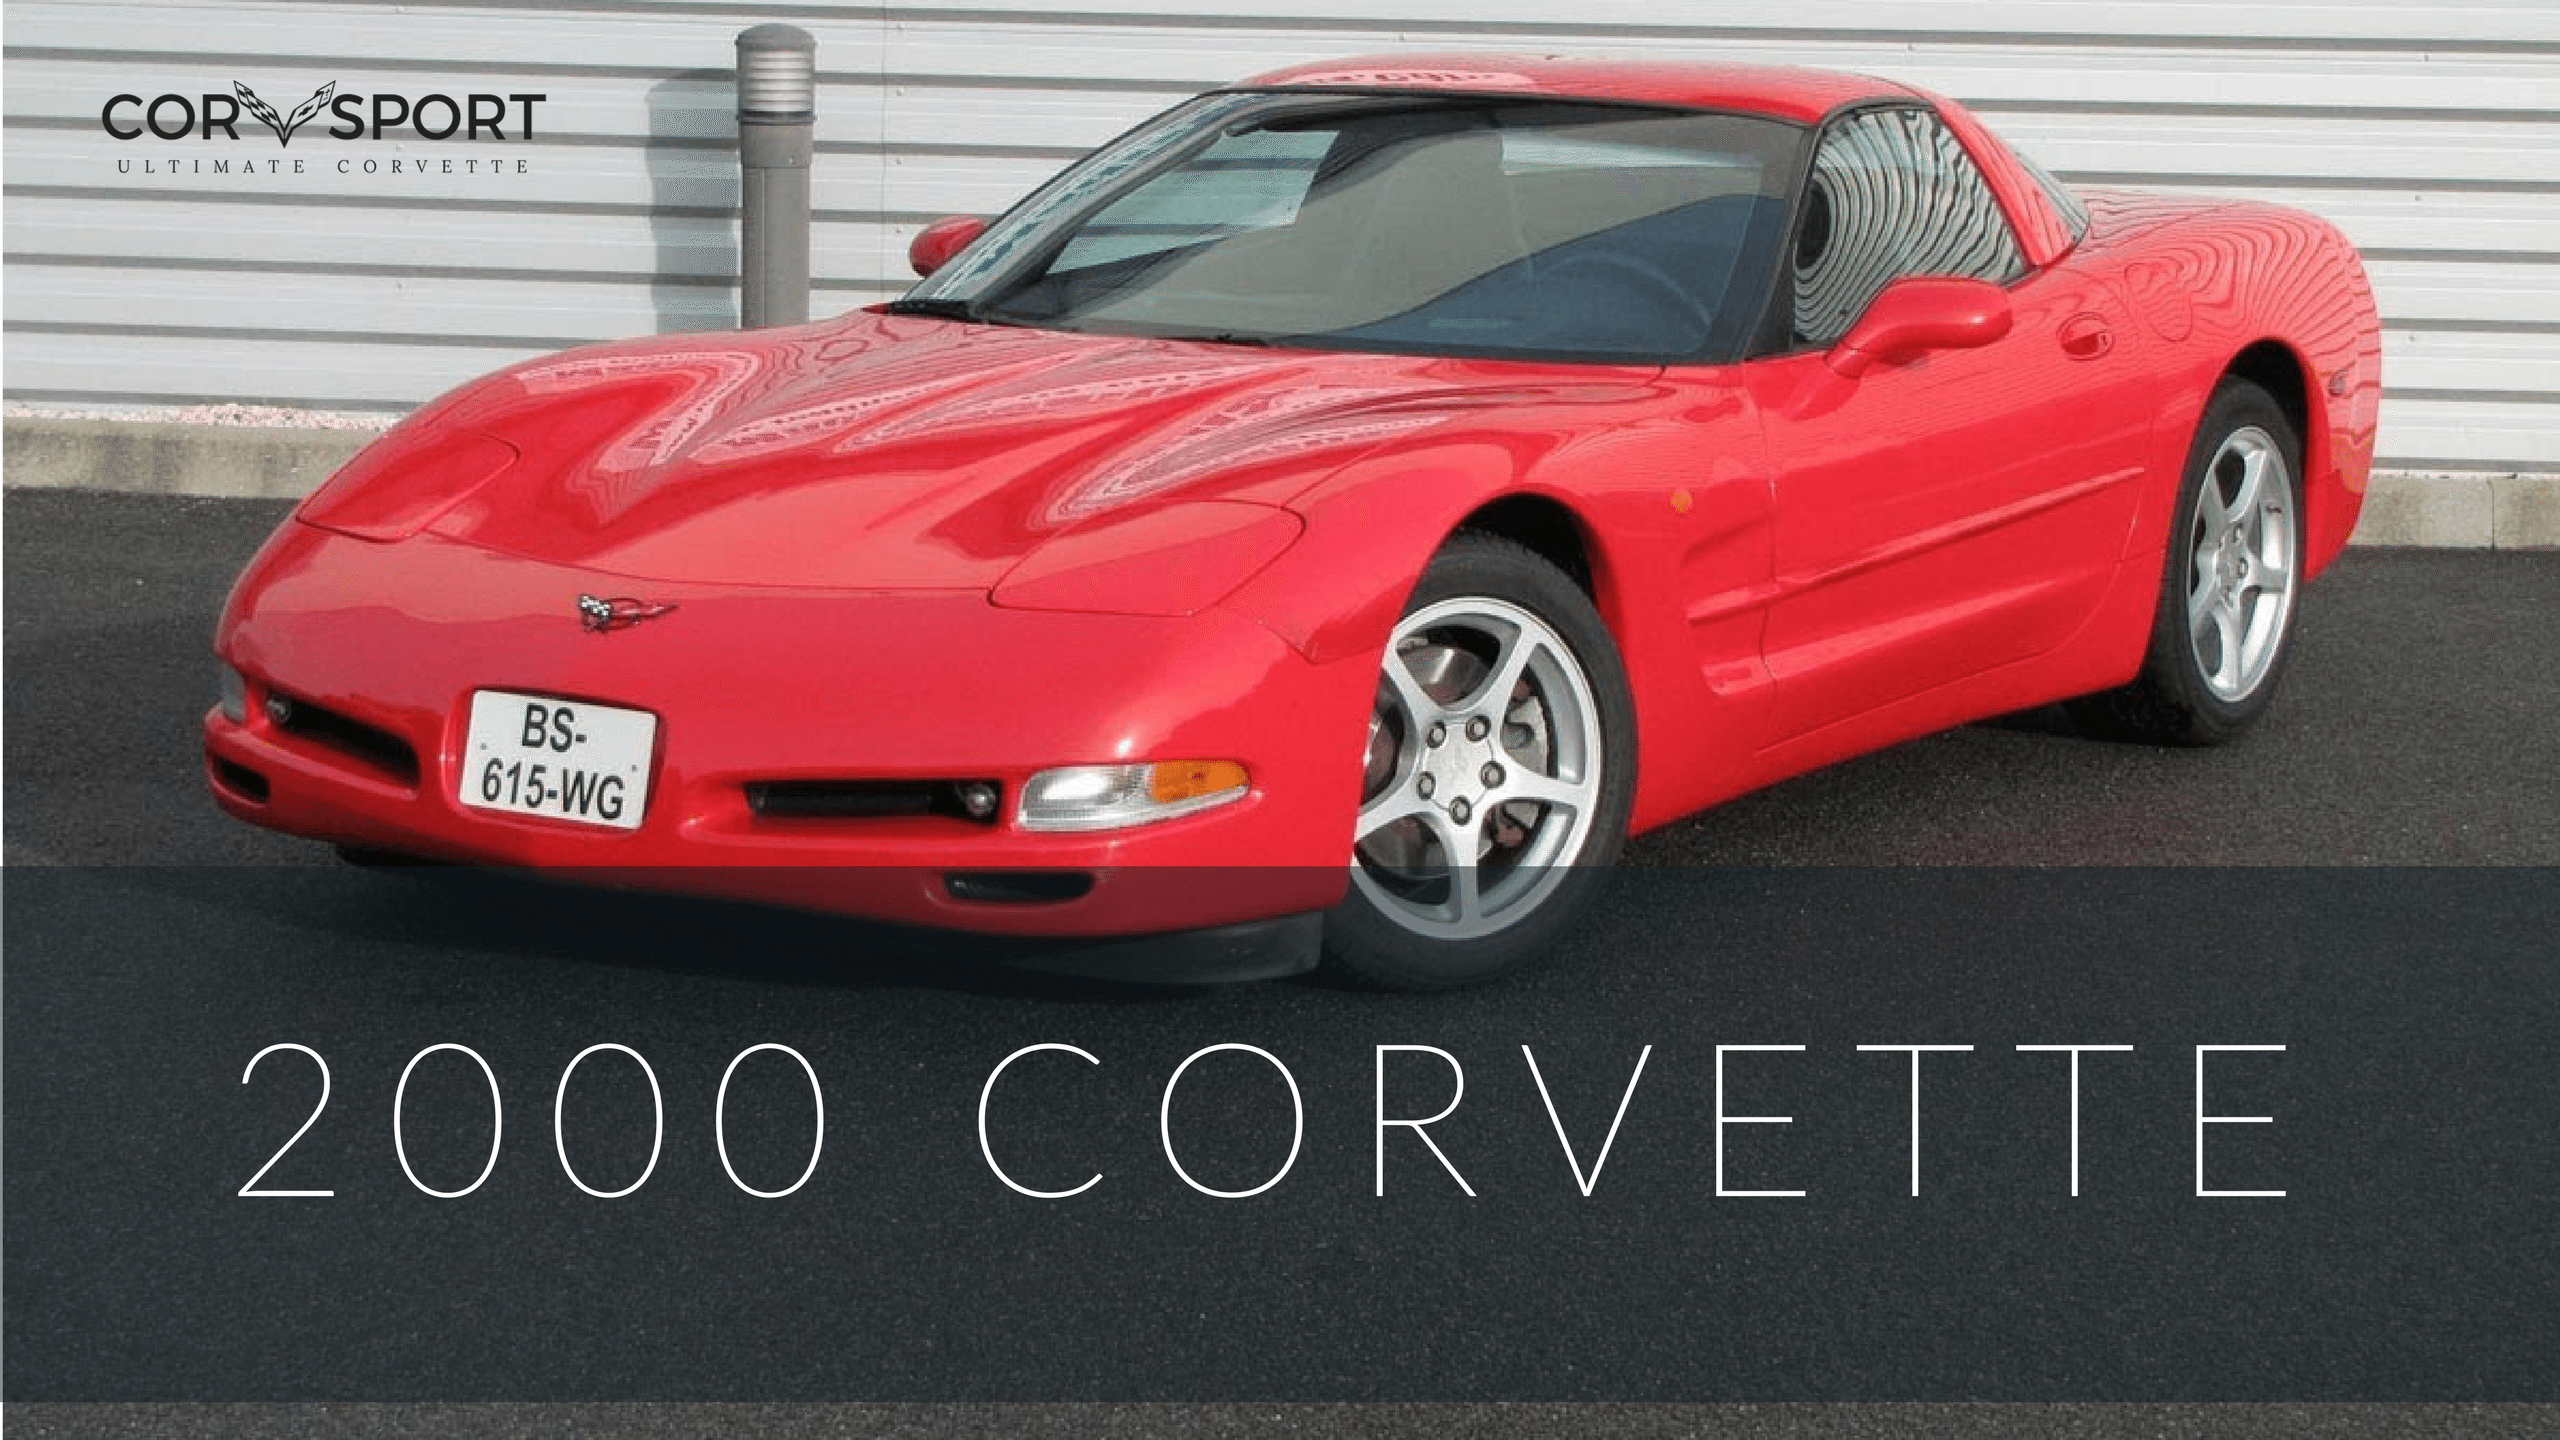 2000 c5 corvette ultimate guide overview specs vin info rh corvsport com C5 Corvette Fuse Layout C5 Corvette Radio Wiring